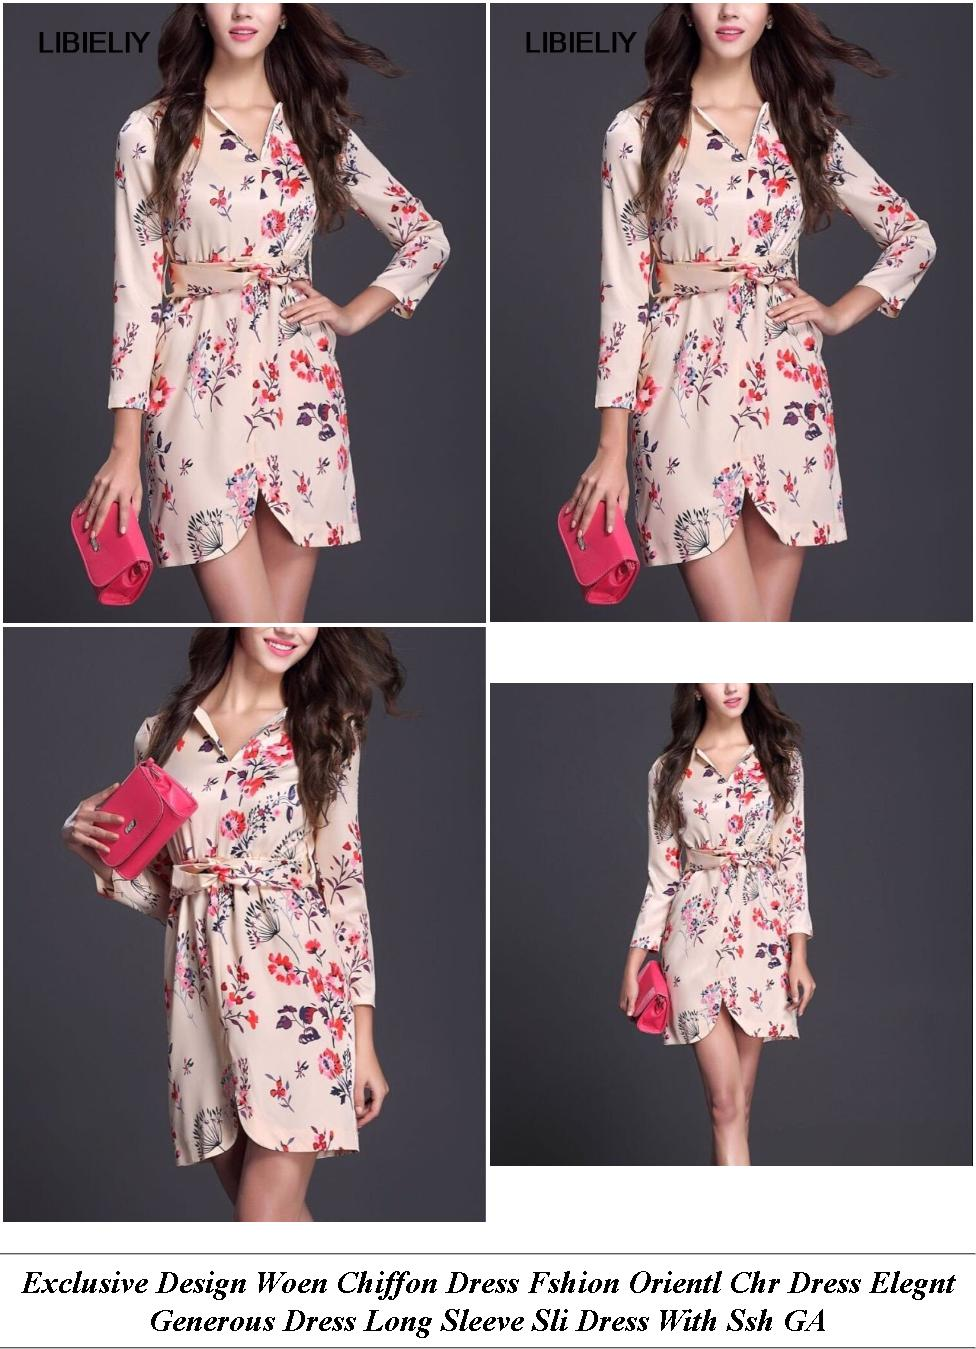 Tea Length Prom Dresses Uk - Stores With The Est Clearance Sales - Lack Long Sleeve Midi Party Dress